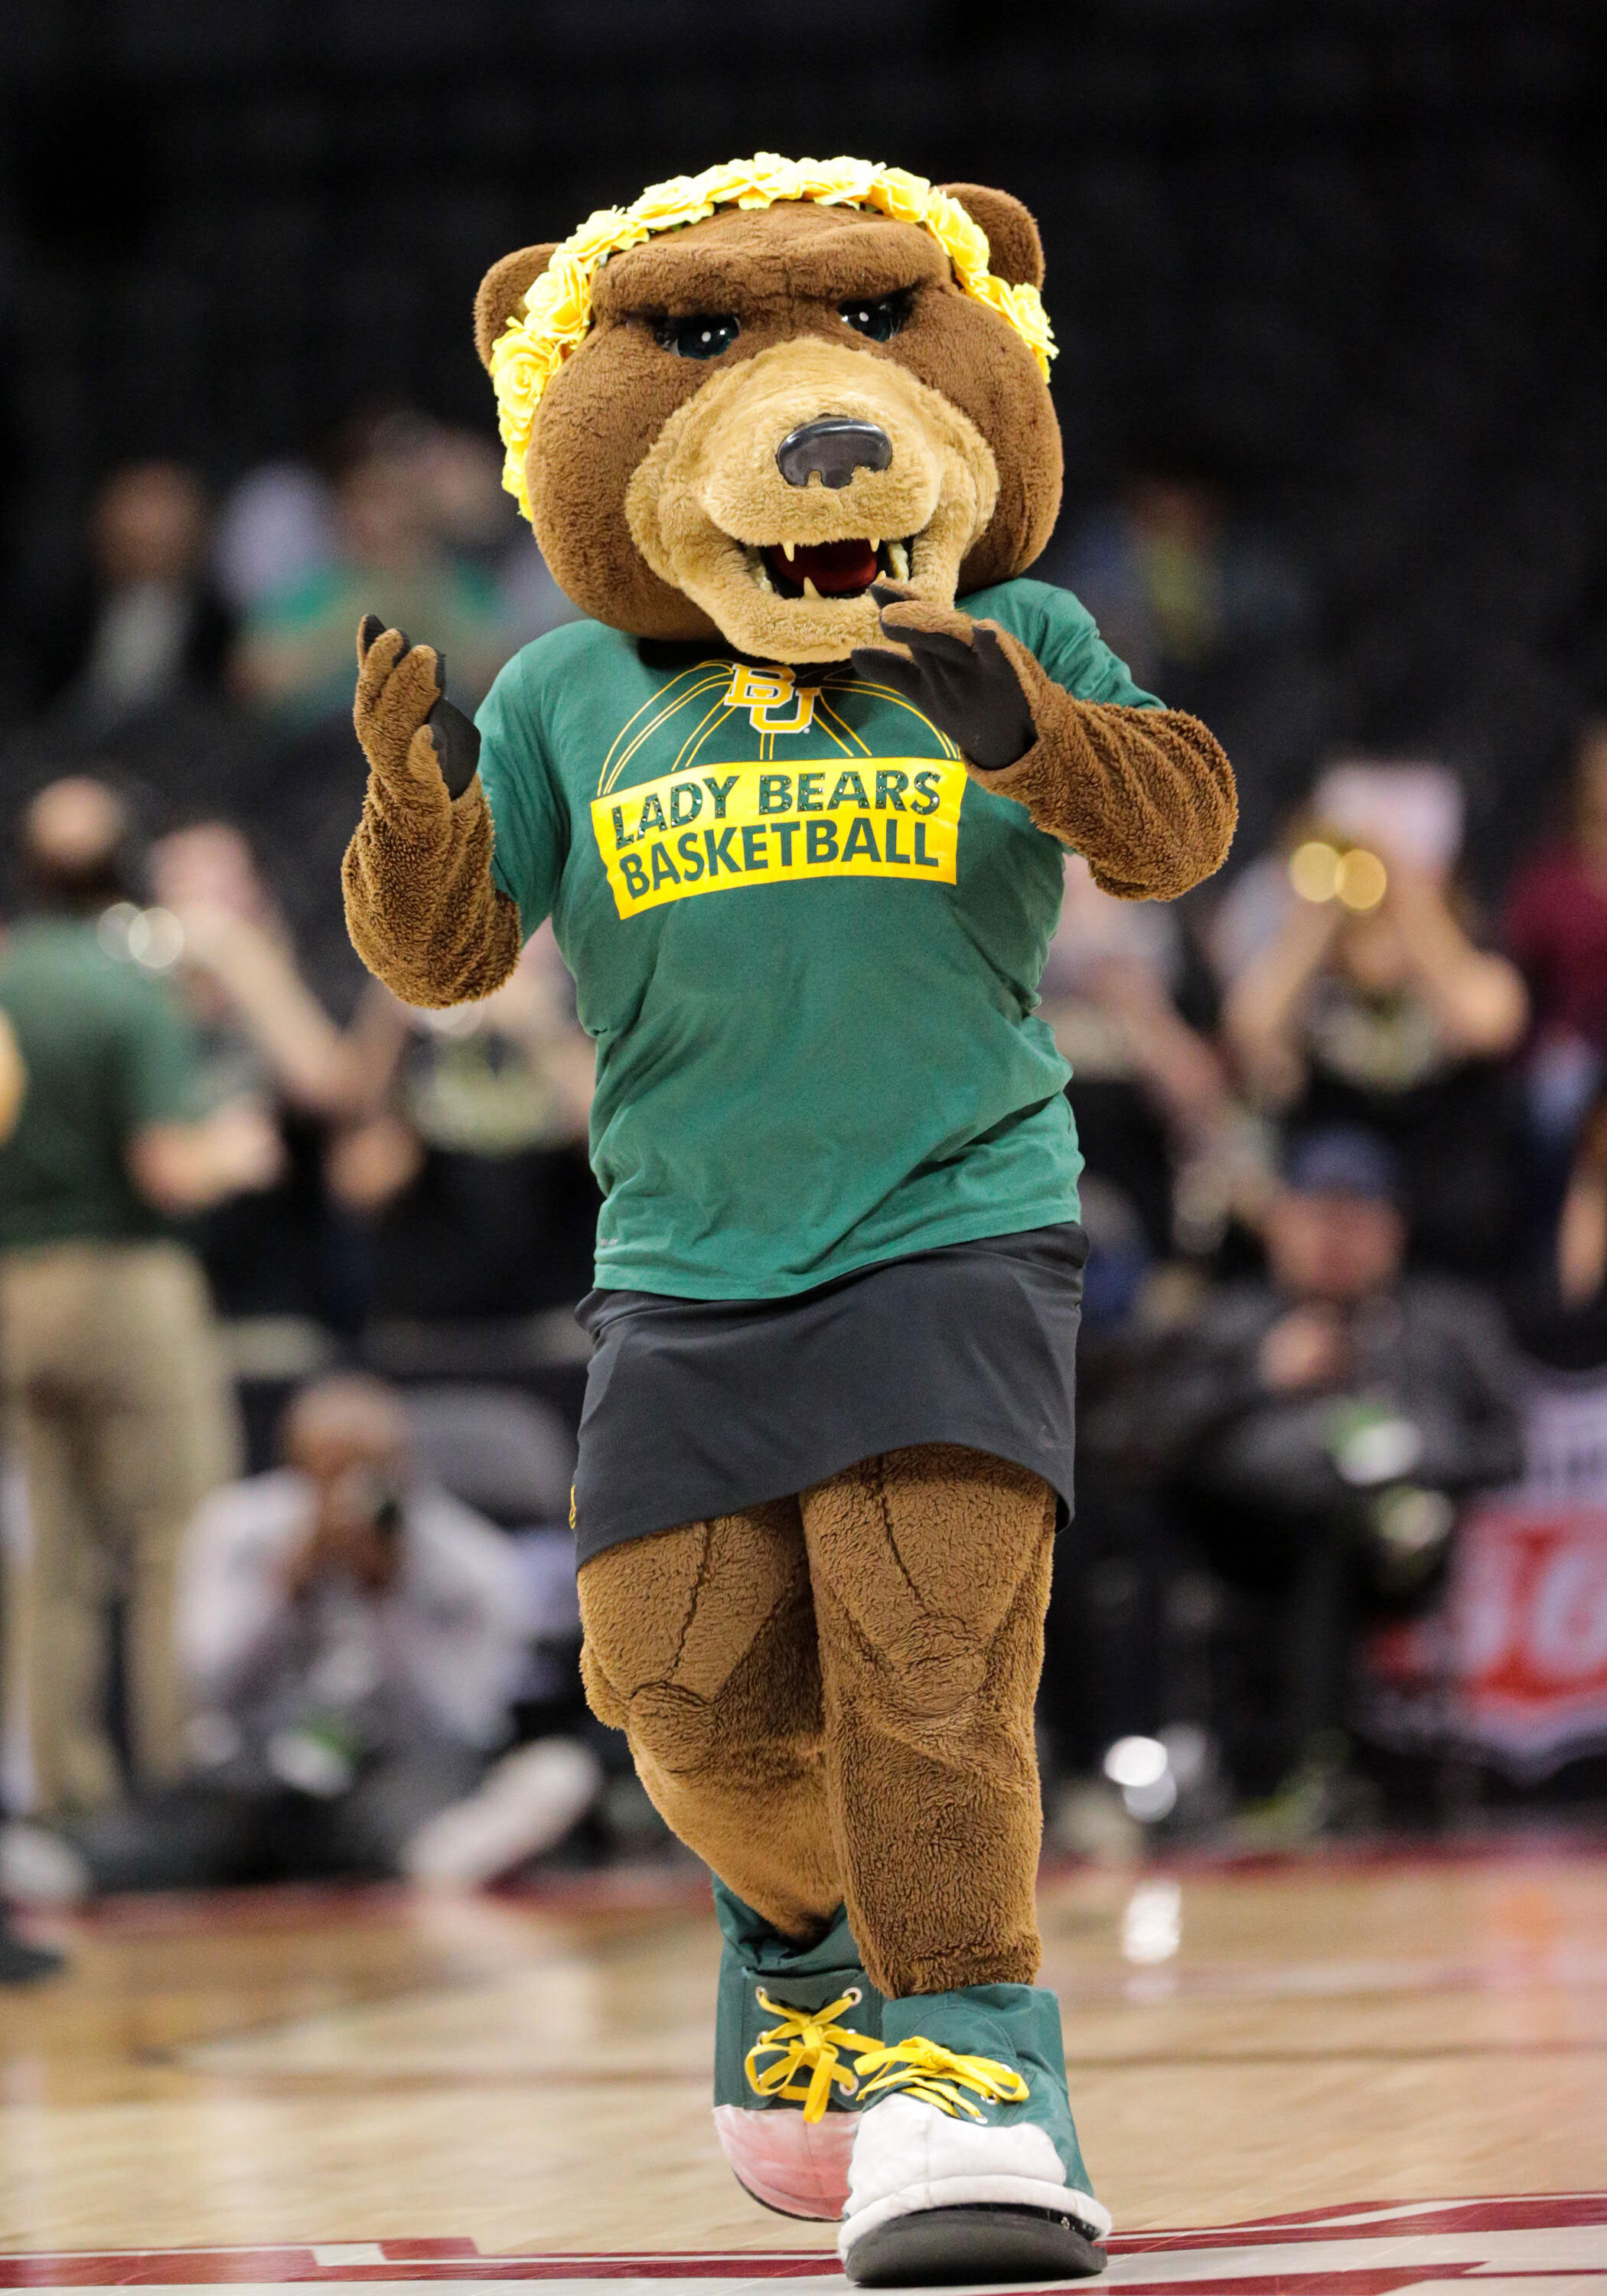 The Baylor women's basketball team is dropping 'Lady' from its name and will be known as the Bears